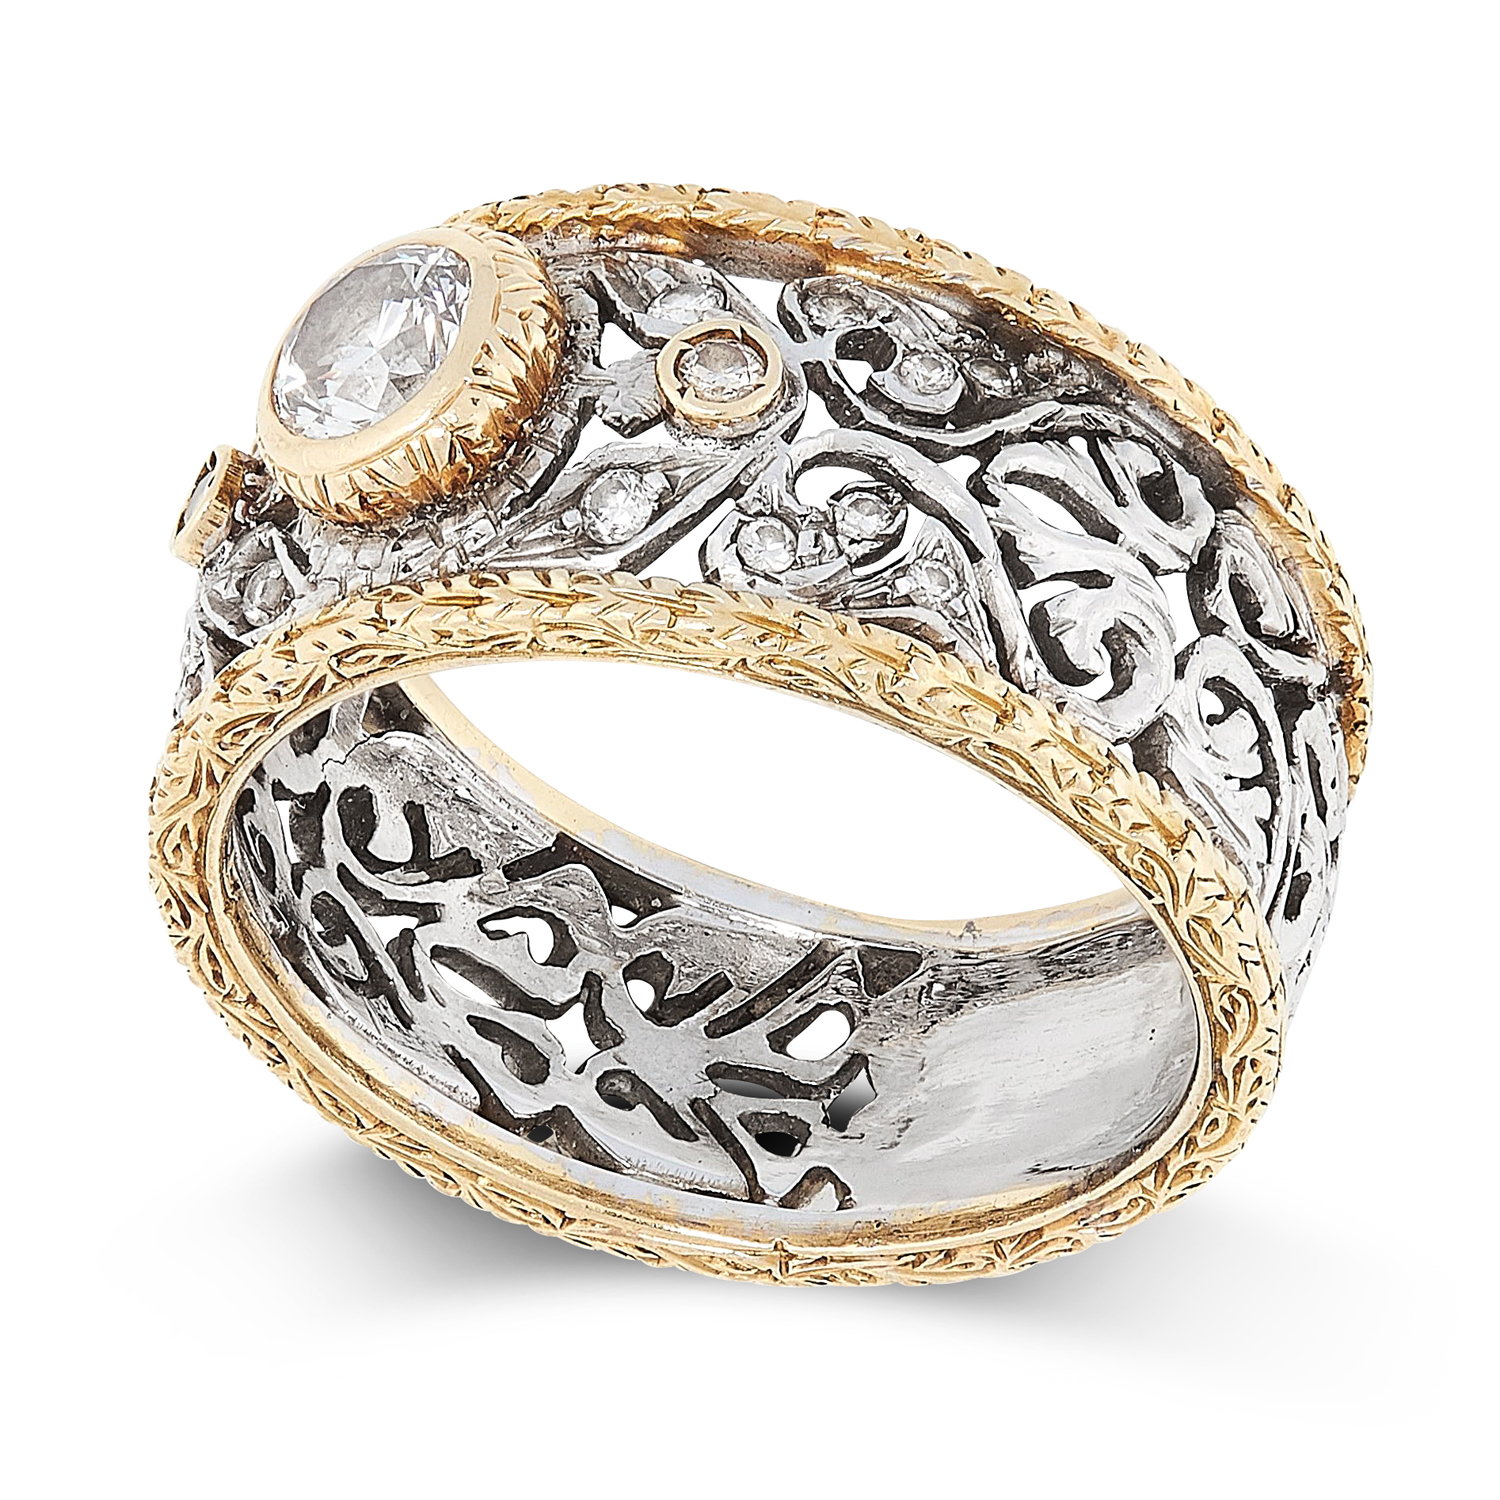 A VINTAGE DIAMOND DRESS RING, ATTR MARIO BUCCELLATI in 18ct gold, the open framework band - Image 2 of 2